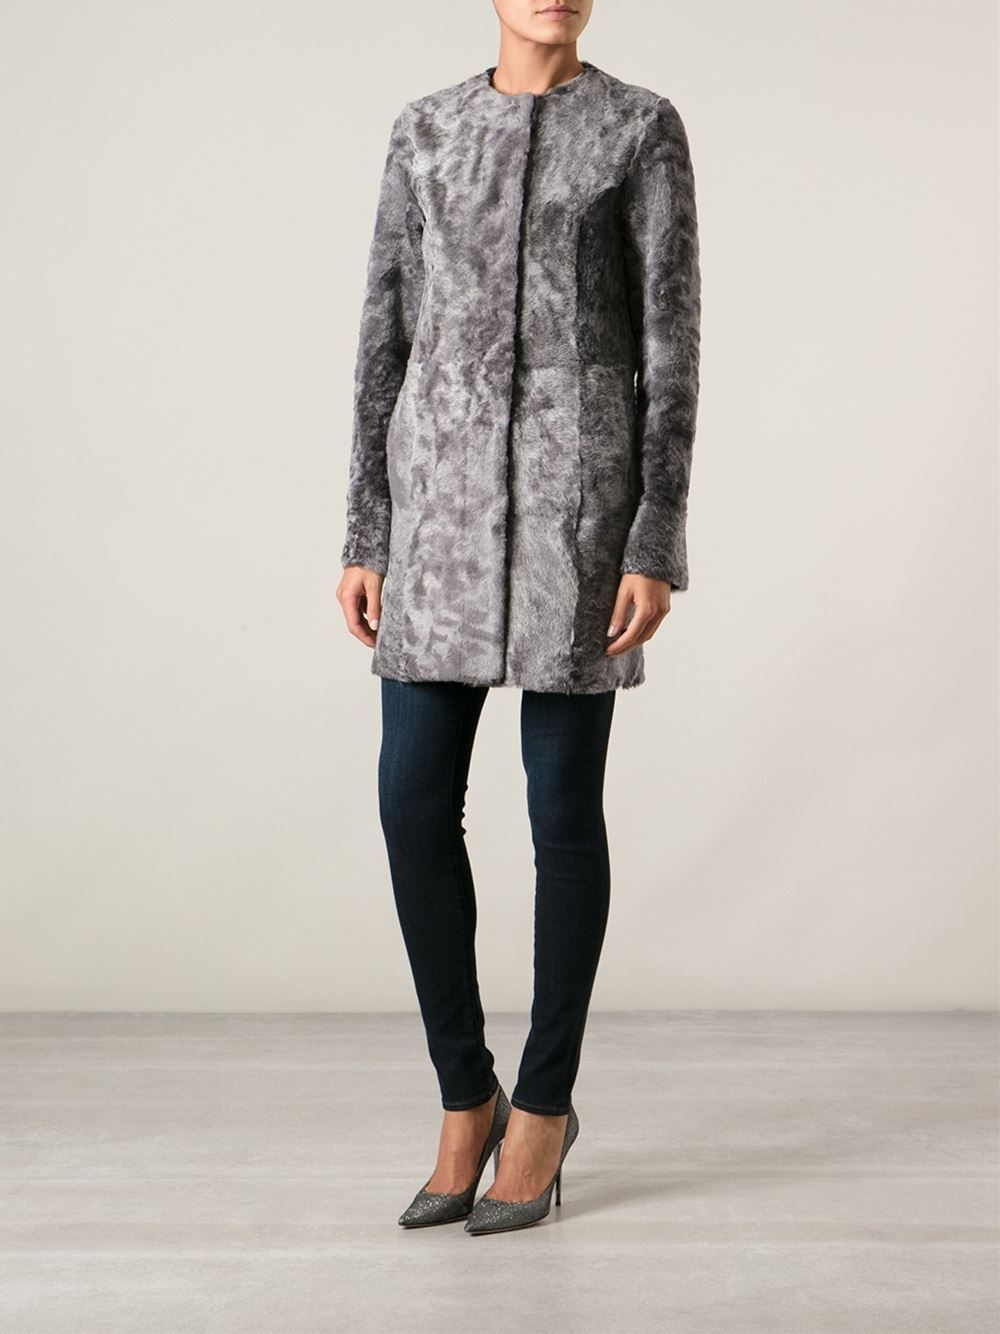 Drome Shaved Mottled Shearling Coat - Feathers - Farfetch.com